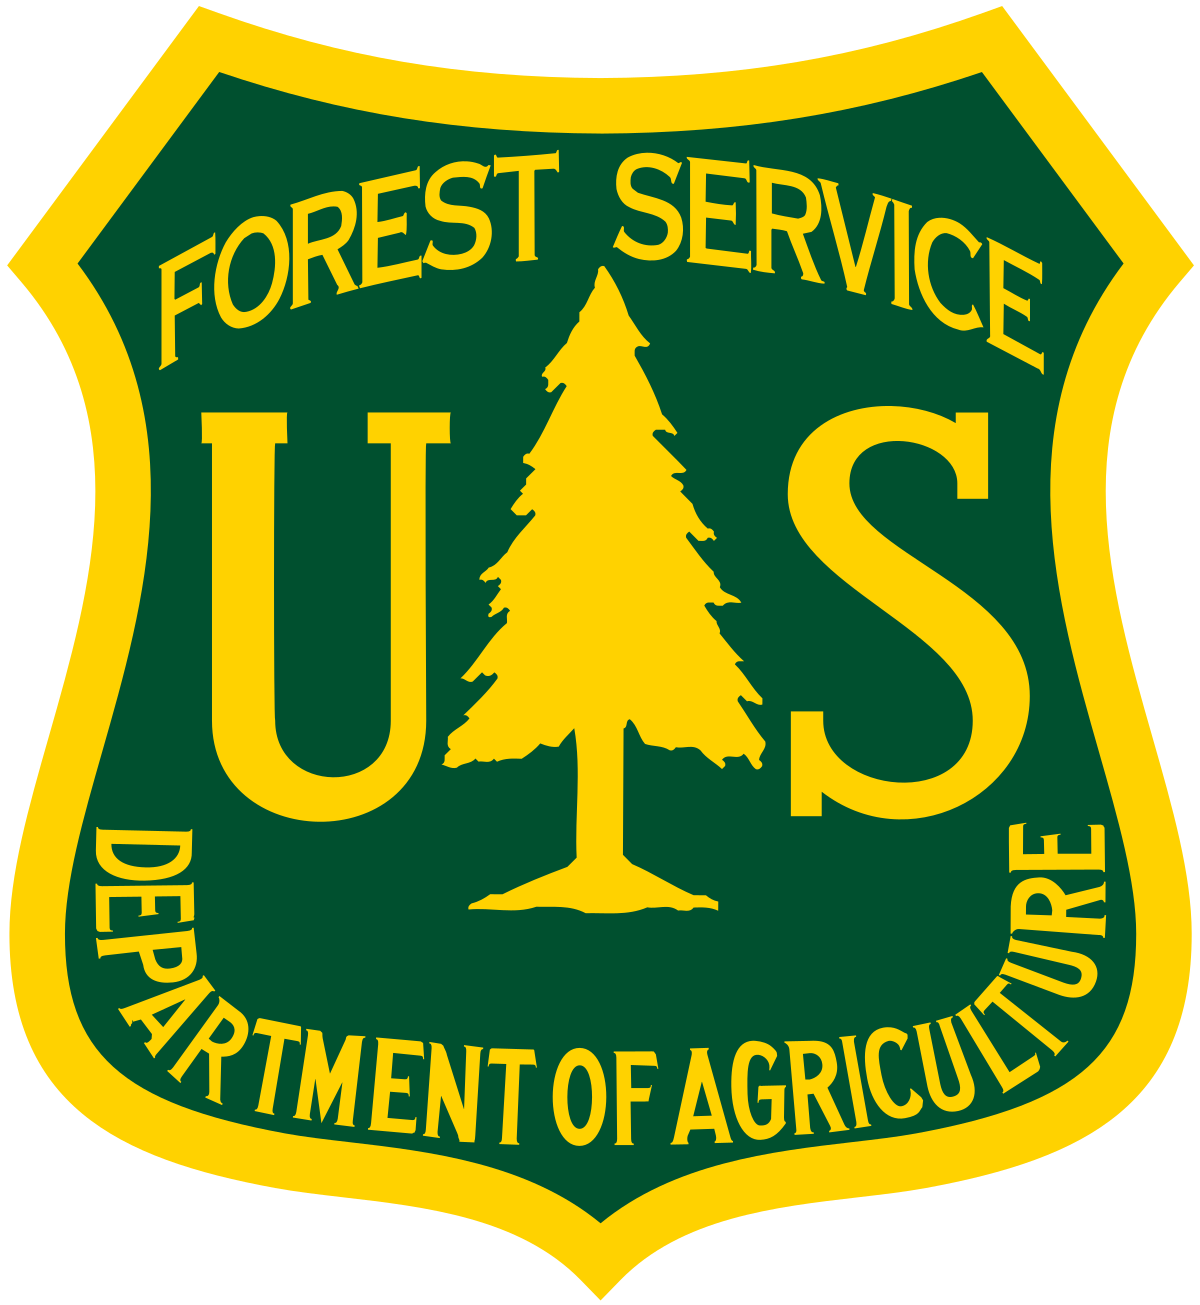 United States US Forest Service logo seal